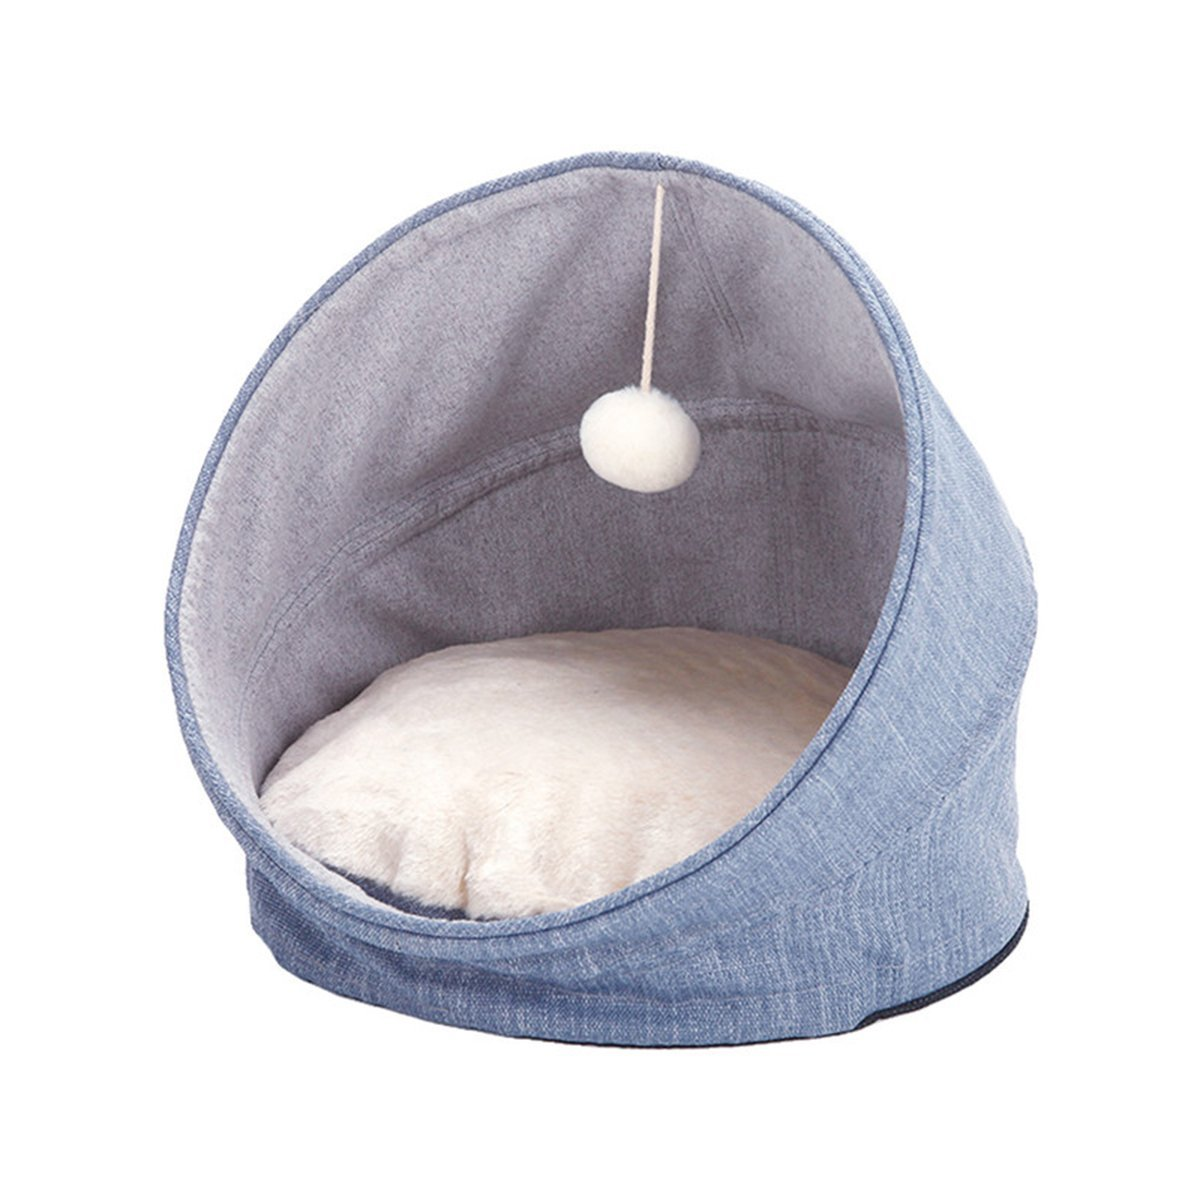 blueE Foldable Pet Bed Self-Warming Cat Bed Home with Soft Cushion Furry Ball Hanging Toy Kitten Harbor Four-Season Haven